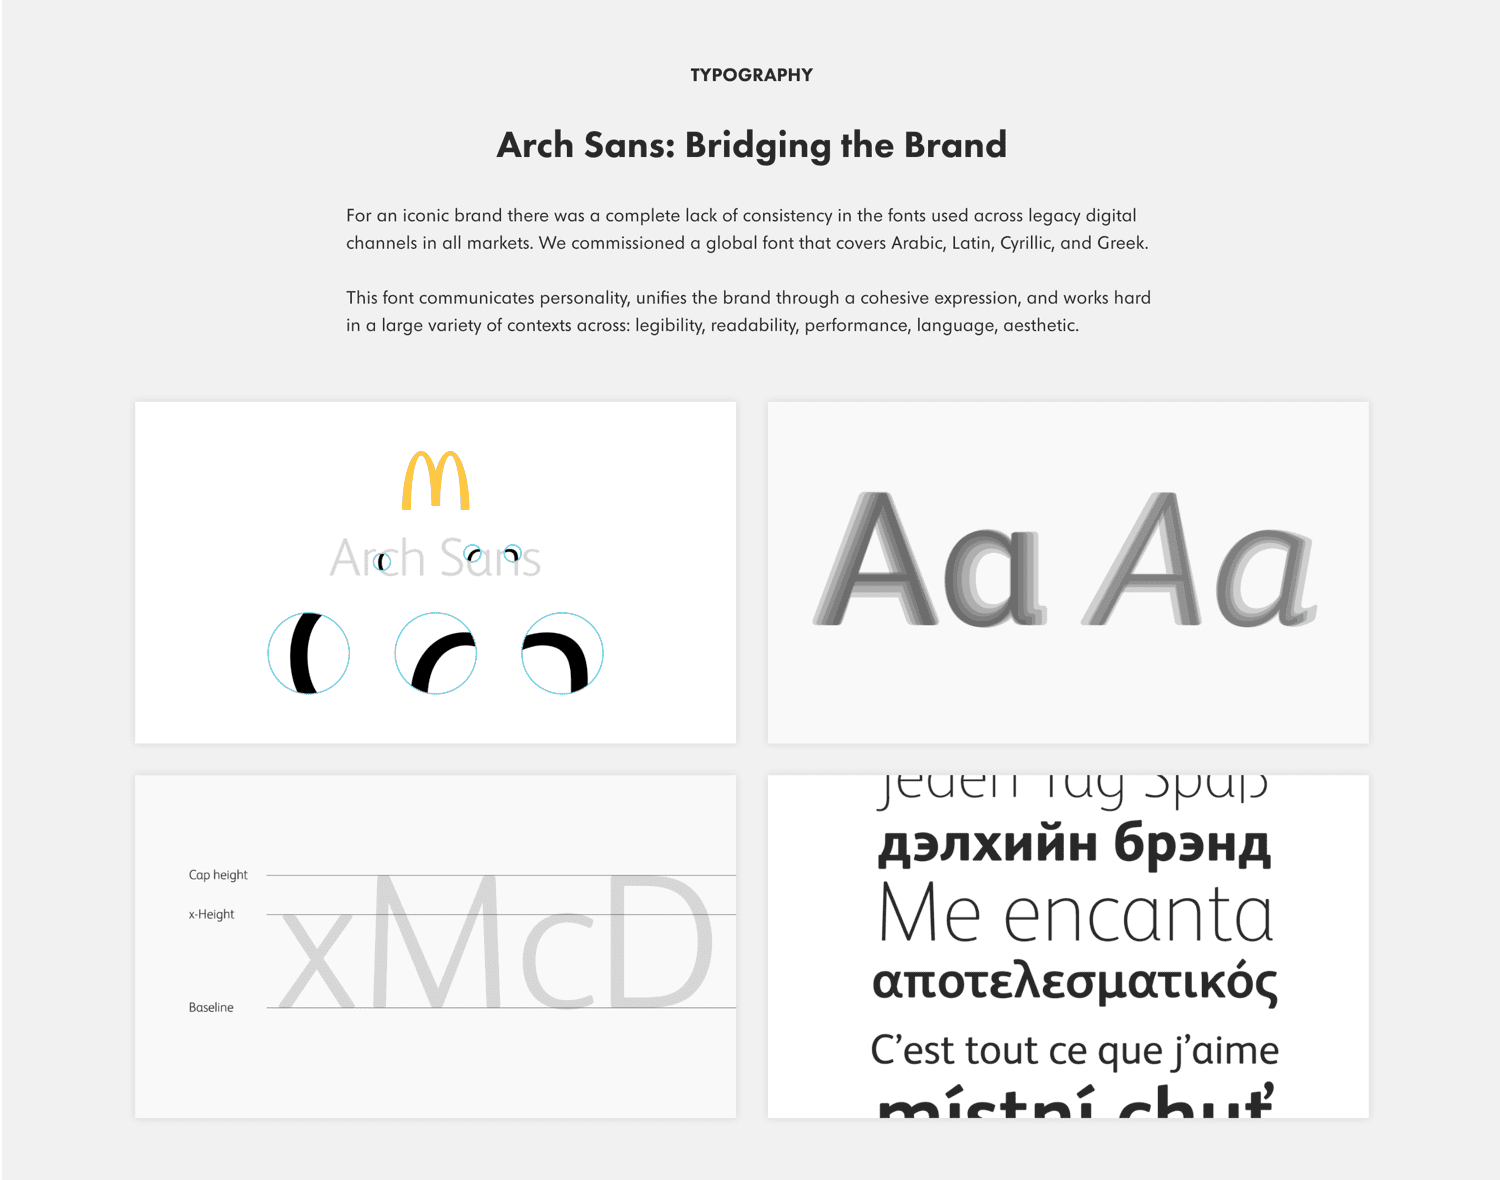 McDonald's Global Digital Brand System